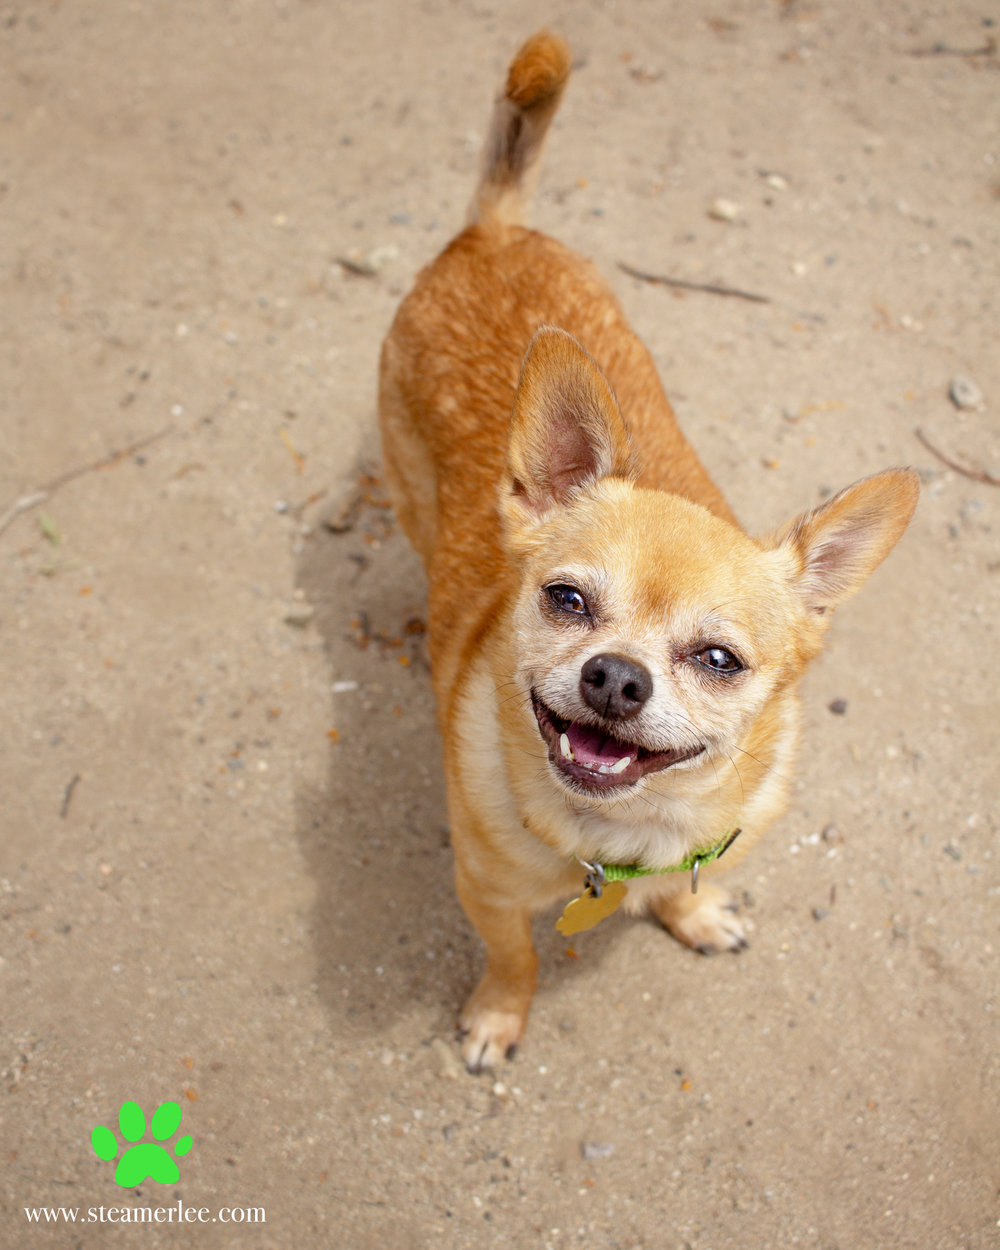 372-Orange-County-Dog-Photography-Steamer-Lee-Southern-California-SBACC.JPG